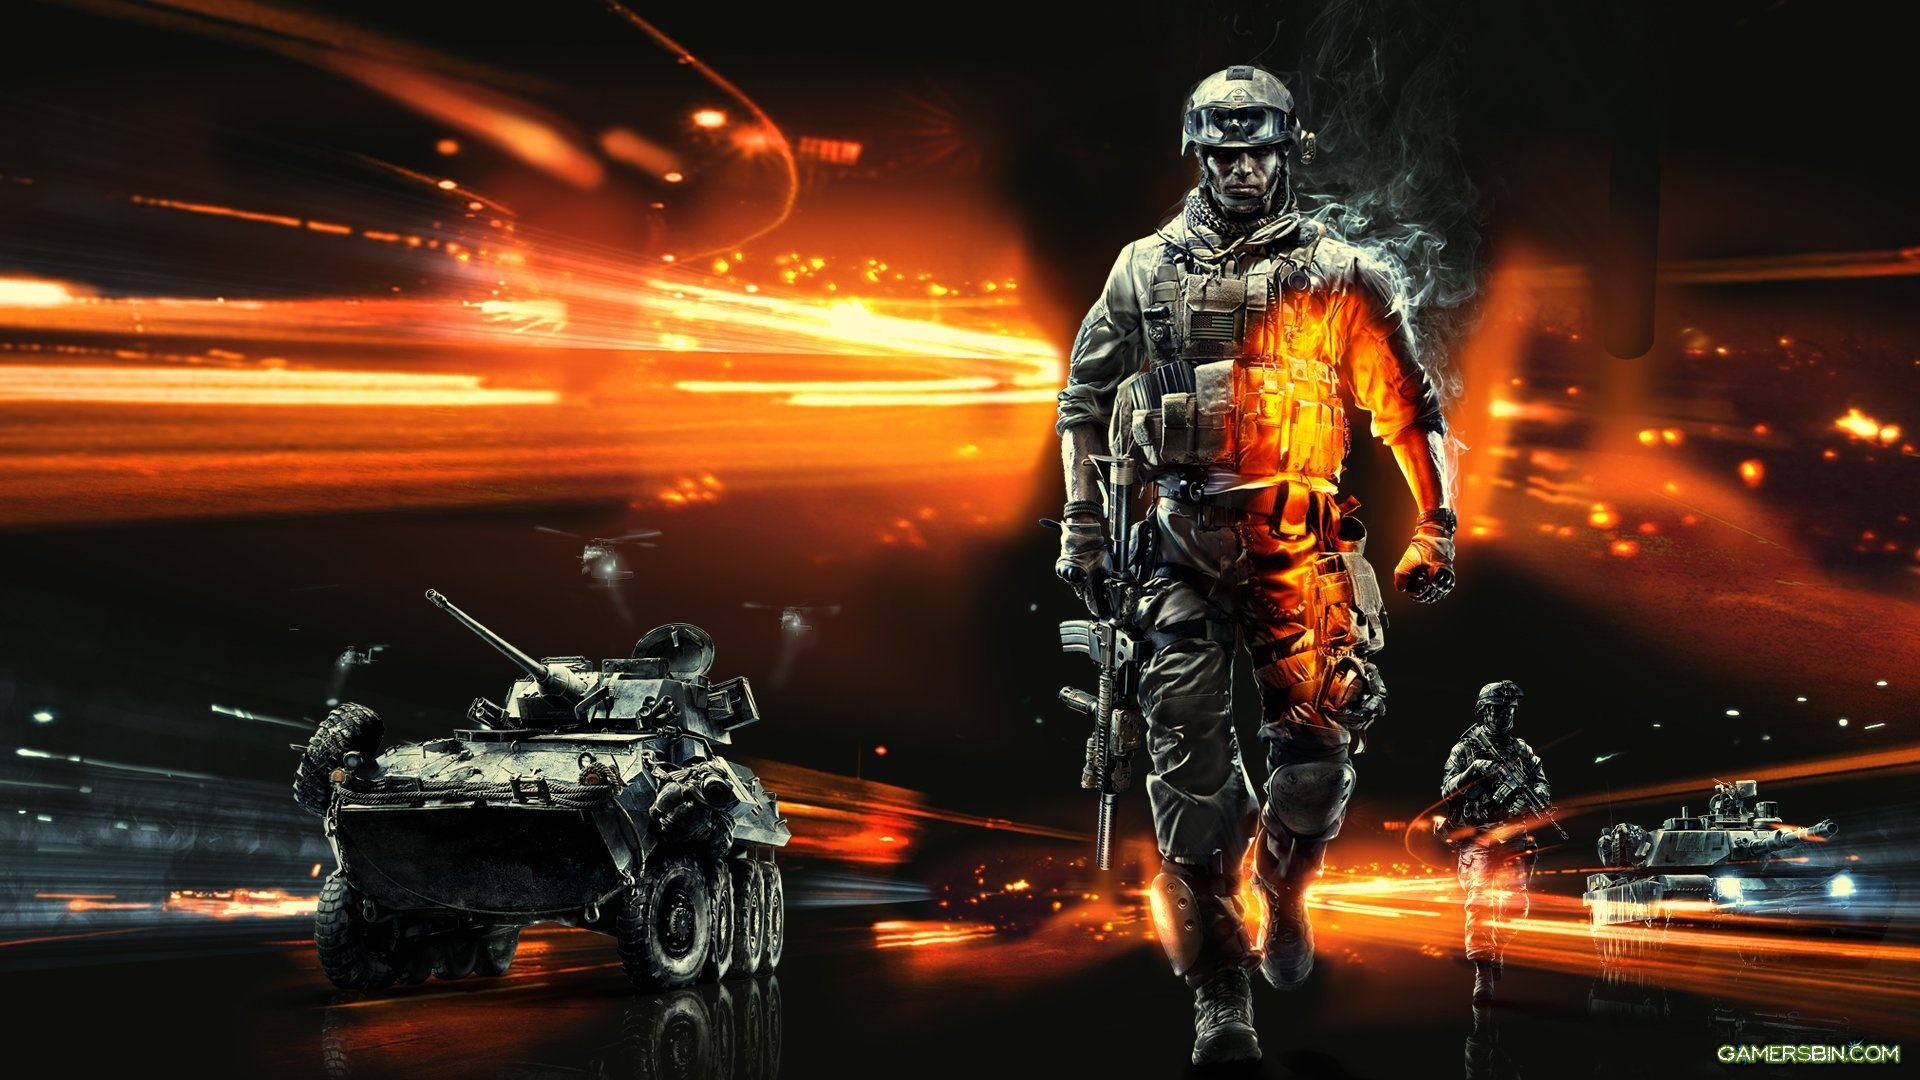 hd battlefield 3 wallpapers battlefield wallpaper hd soldiers arms 1920x1080